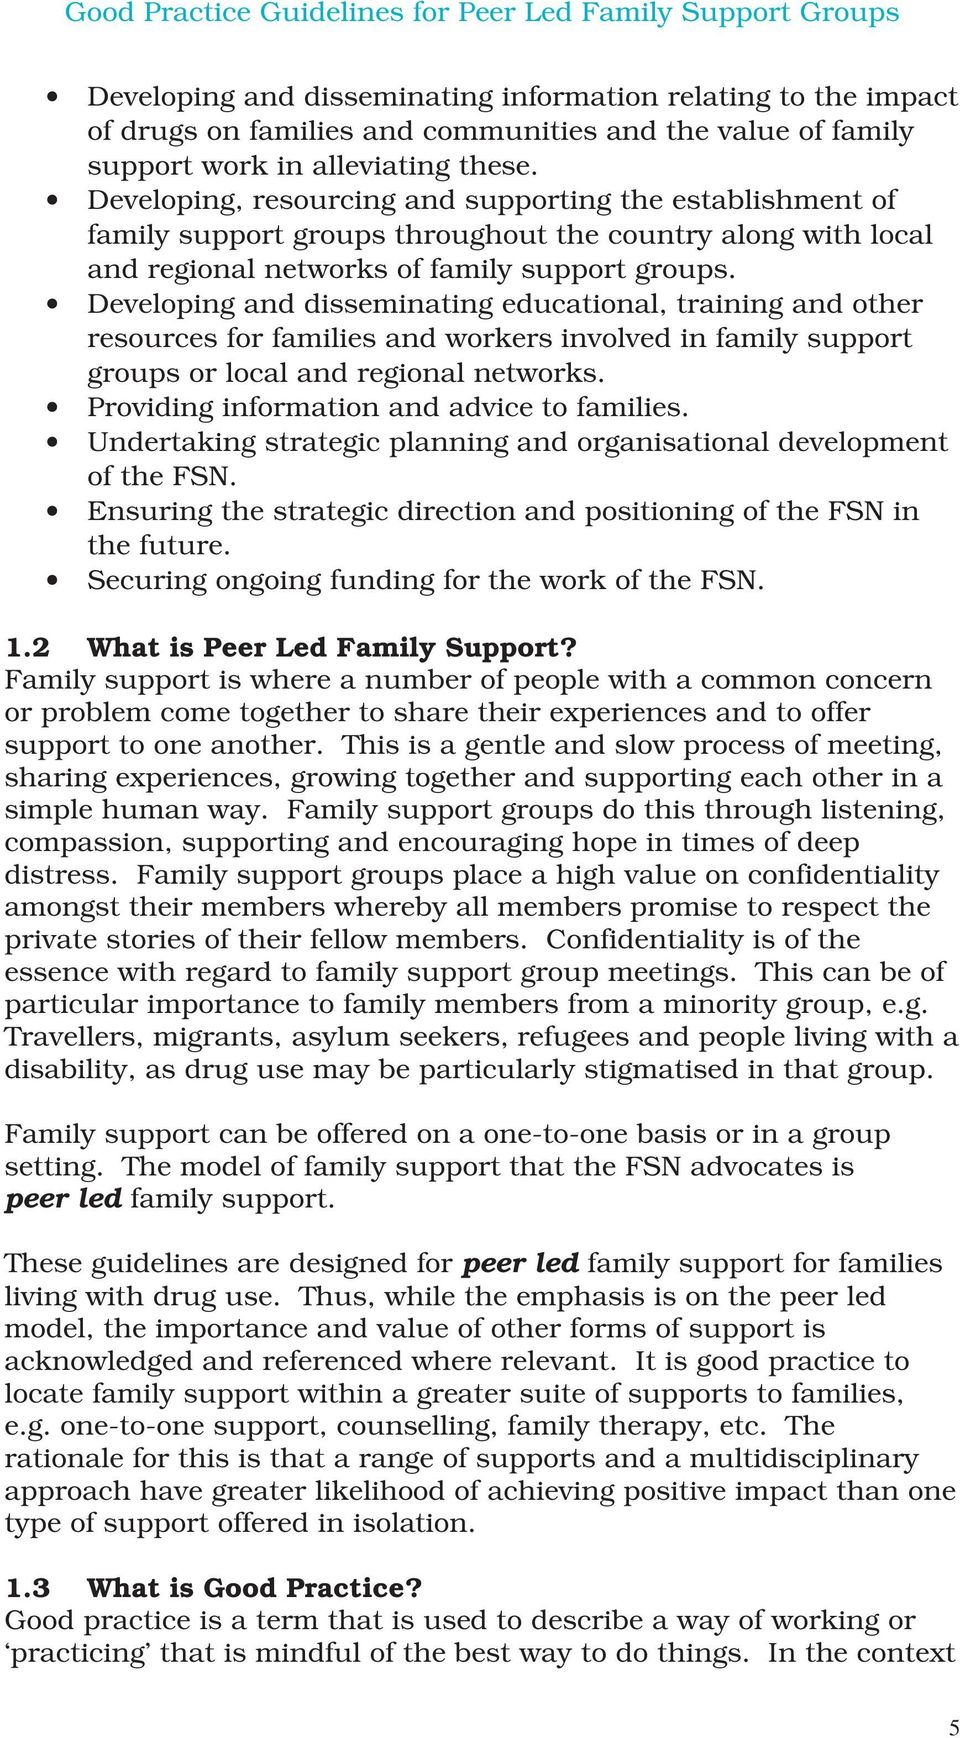 Developing and disseminating educational, training and other resources for families and workers involved in family support groups or local and regional networks.